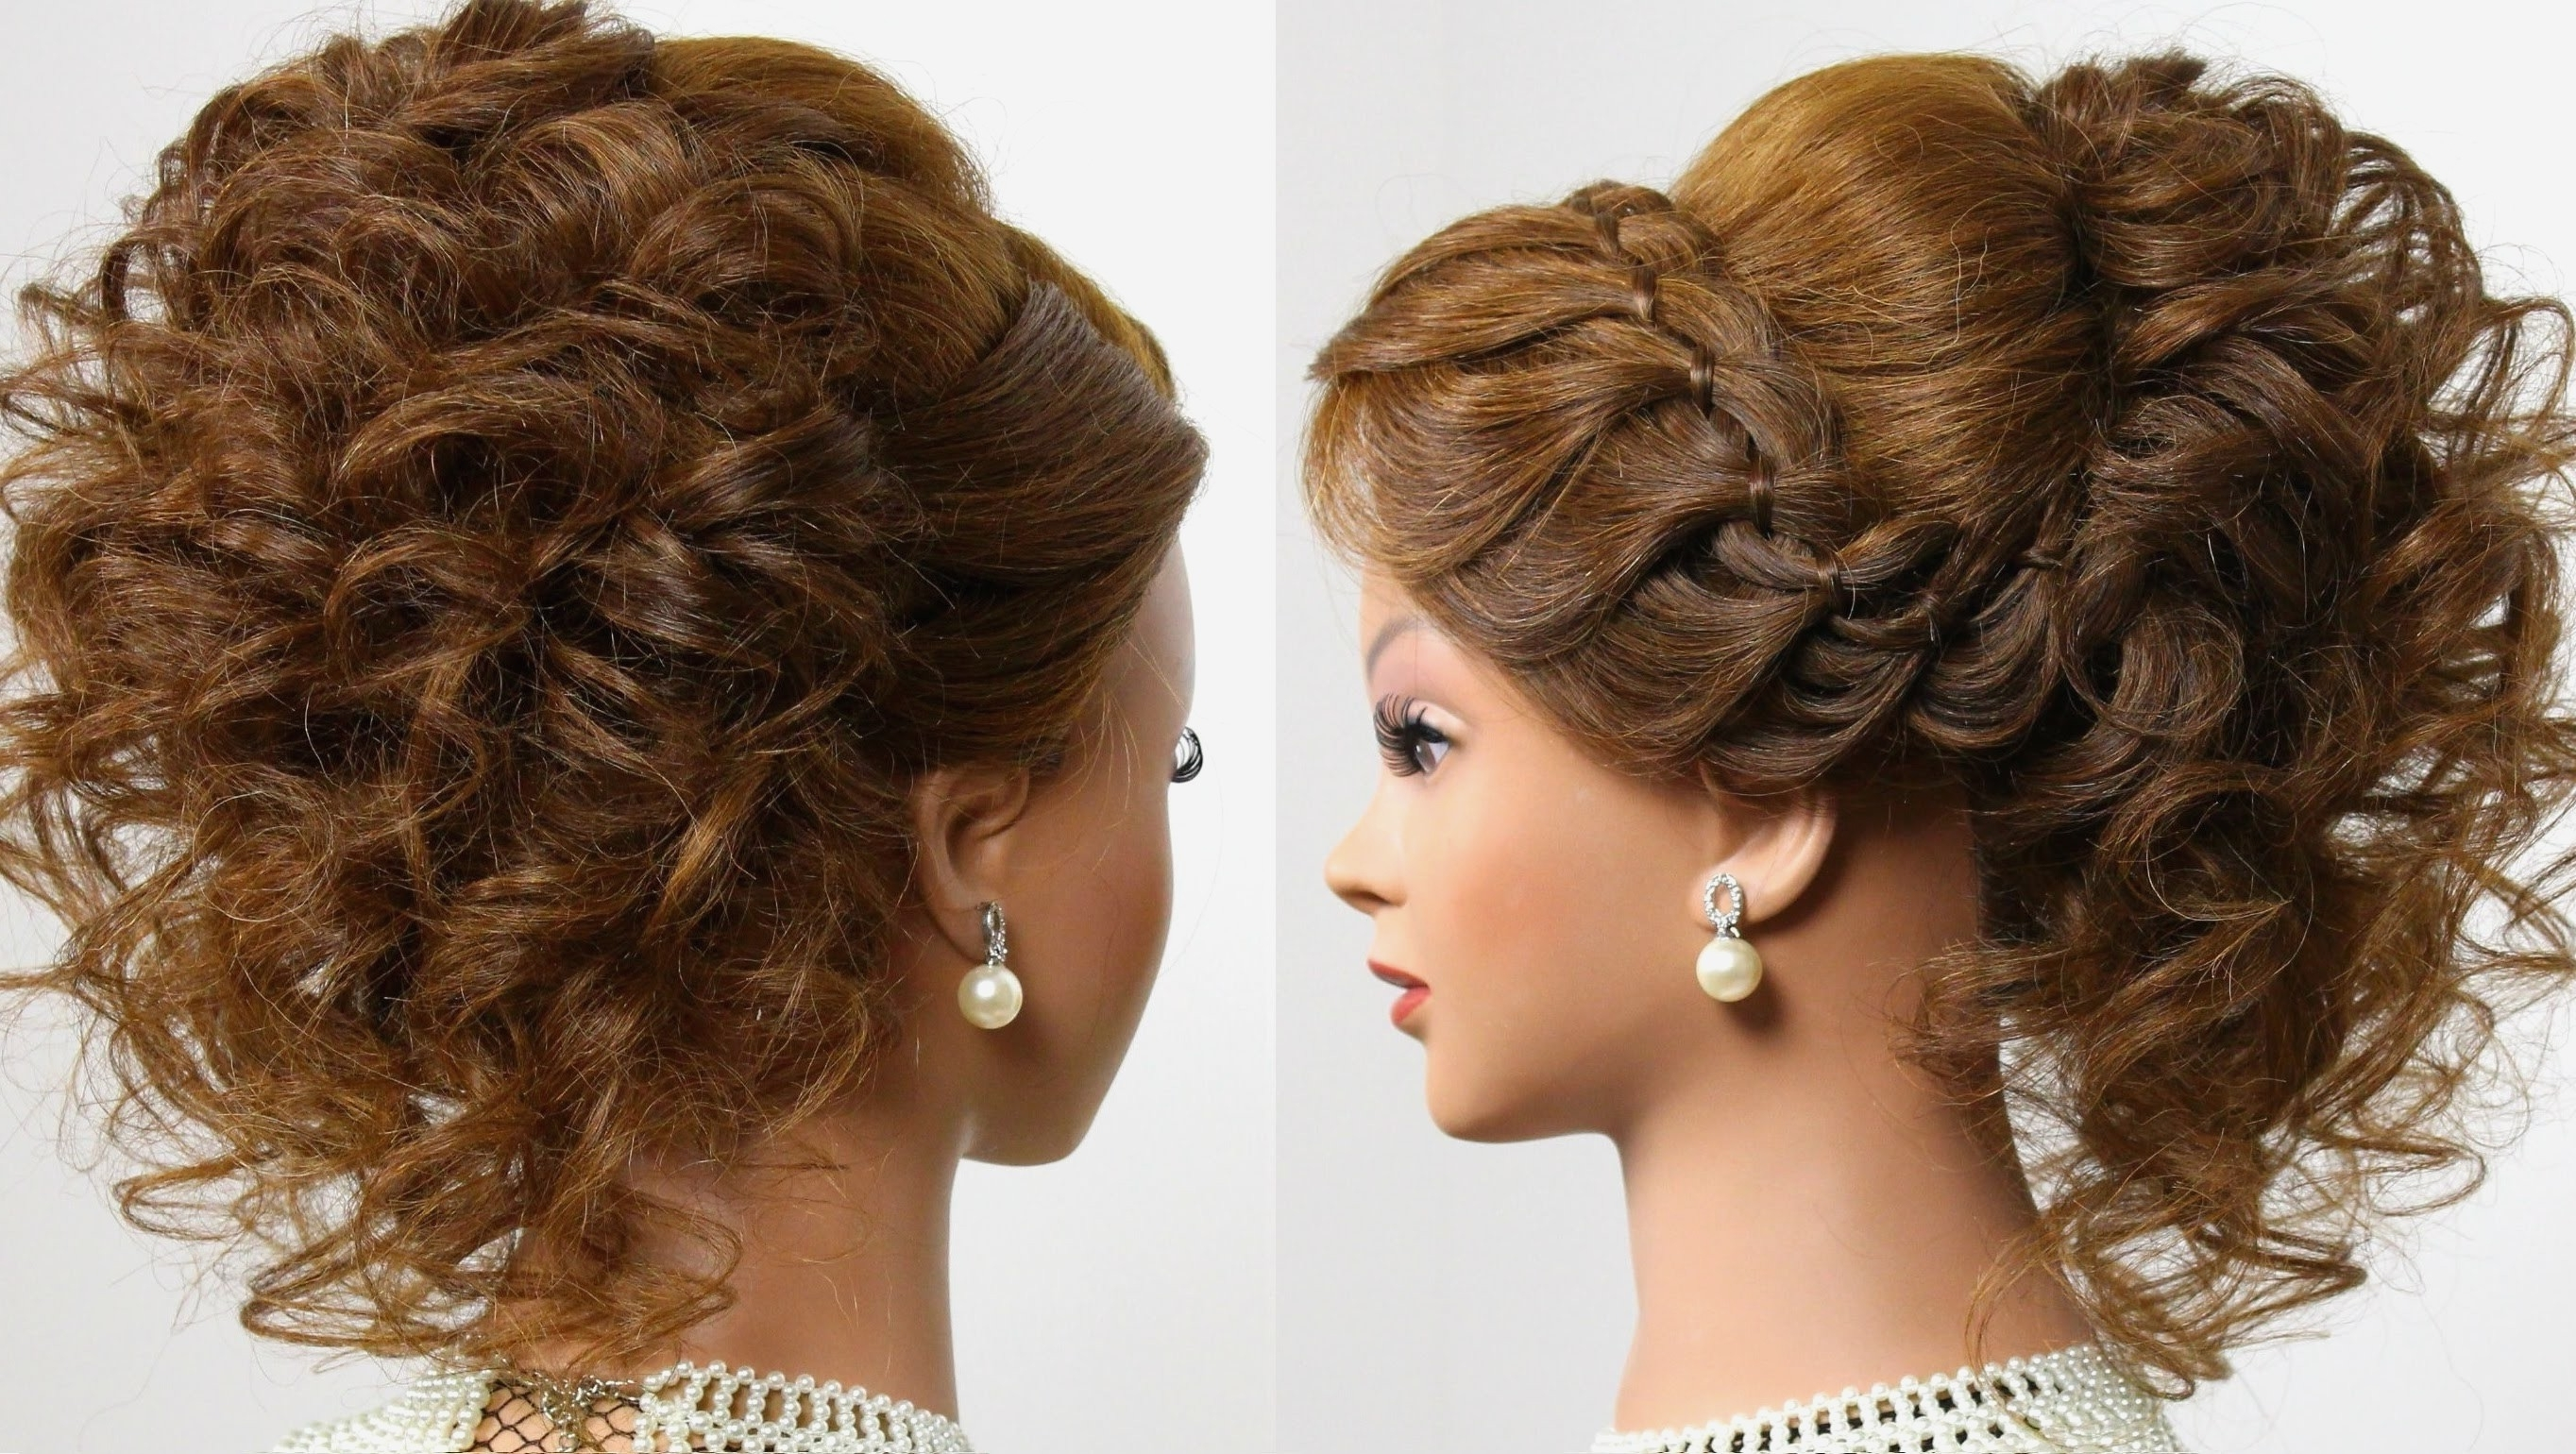 Photo Gallery Of Bridal Updo Hairstyles For Medium Length Hair